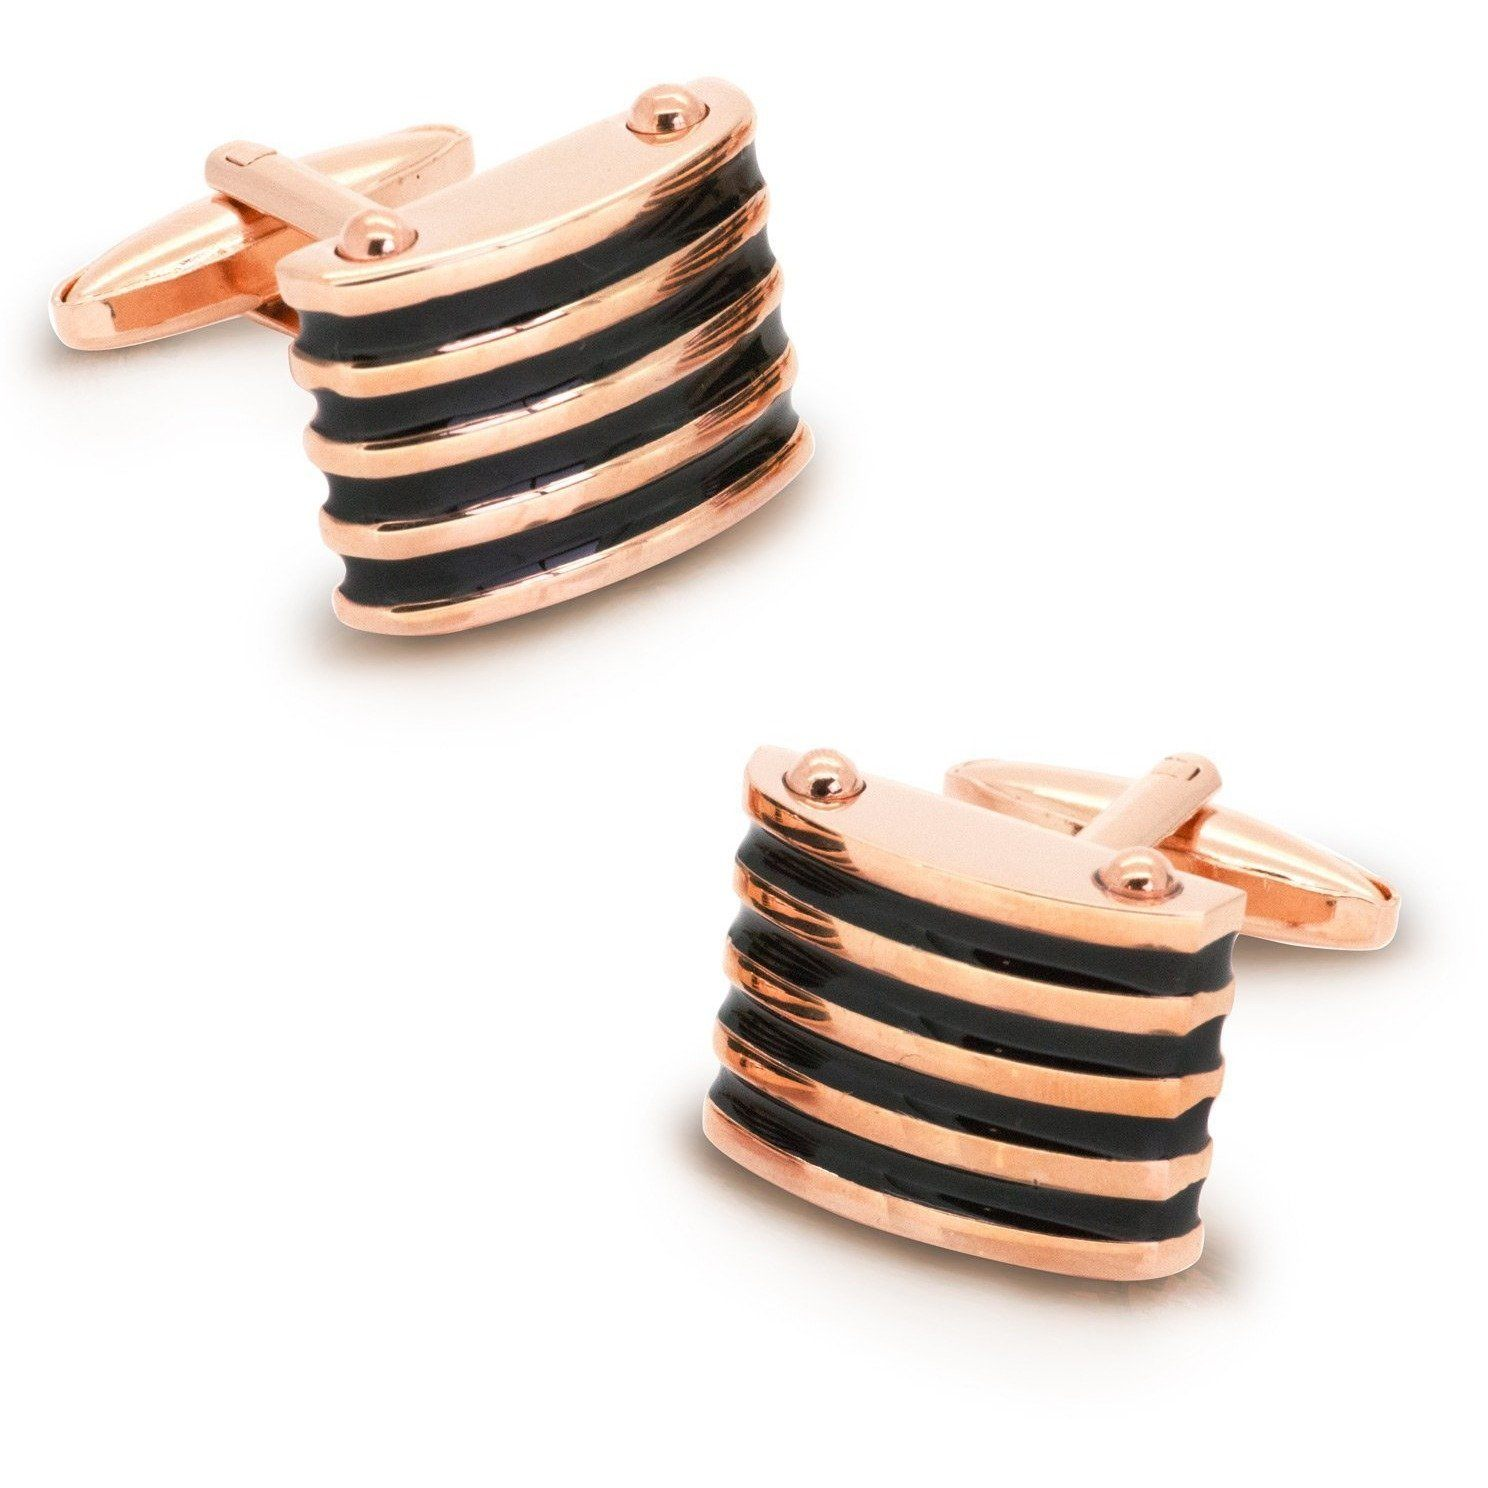 Rose Gold with Black Enamel Grooves Cufflinks Classic & Modern Cufflinks Clinks Australia Rose Gold with Black Enamel Grooves Cufflinks